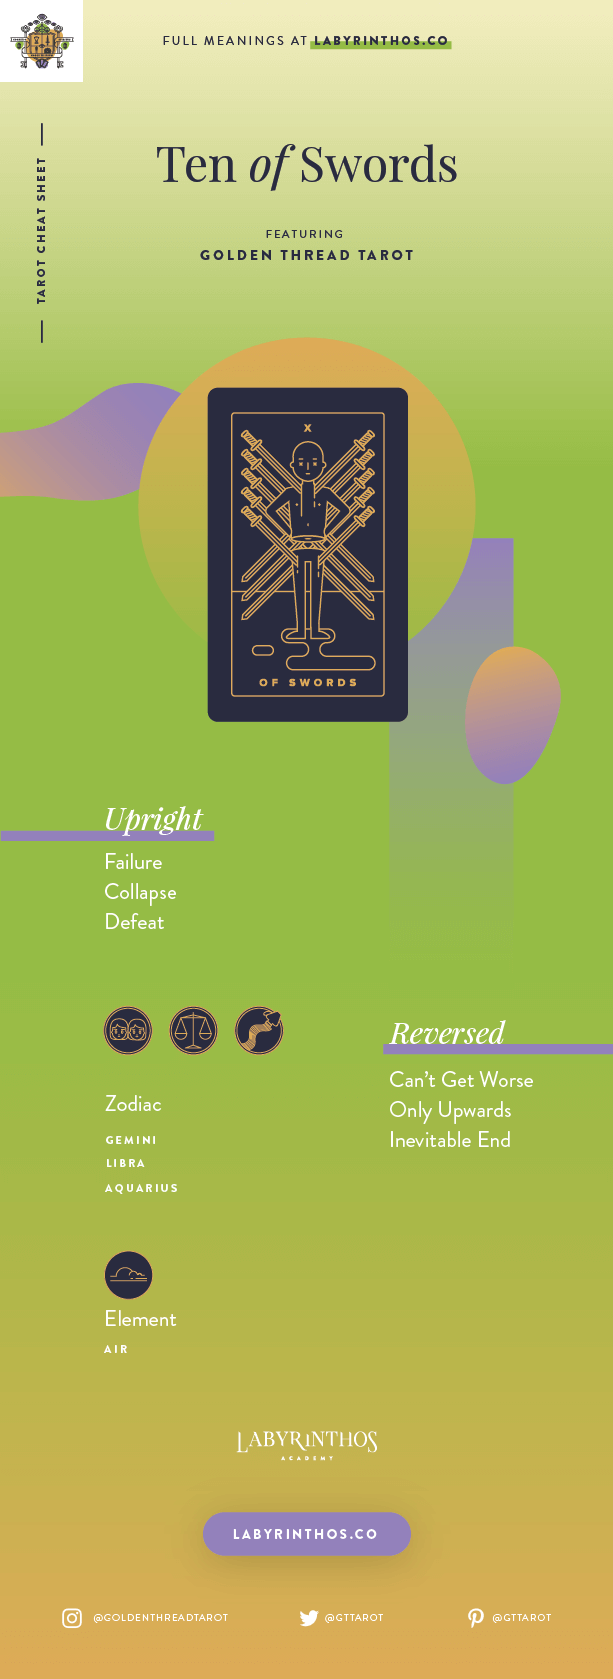 Ten of Swords Meaning - Tarot Card Meanings Cheat Sheet. Art from Golden Thread Tarot.